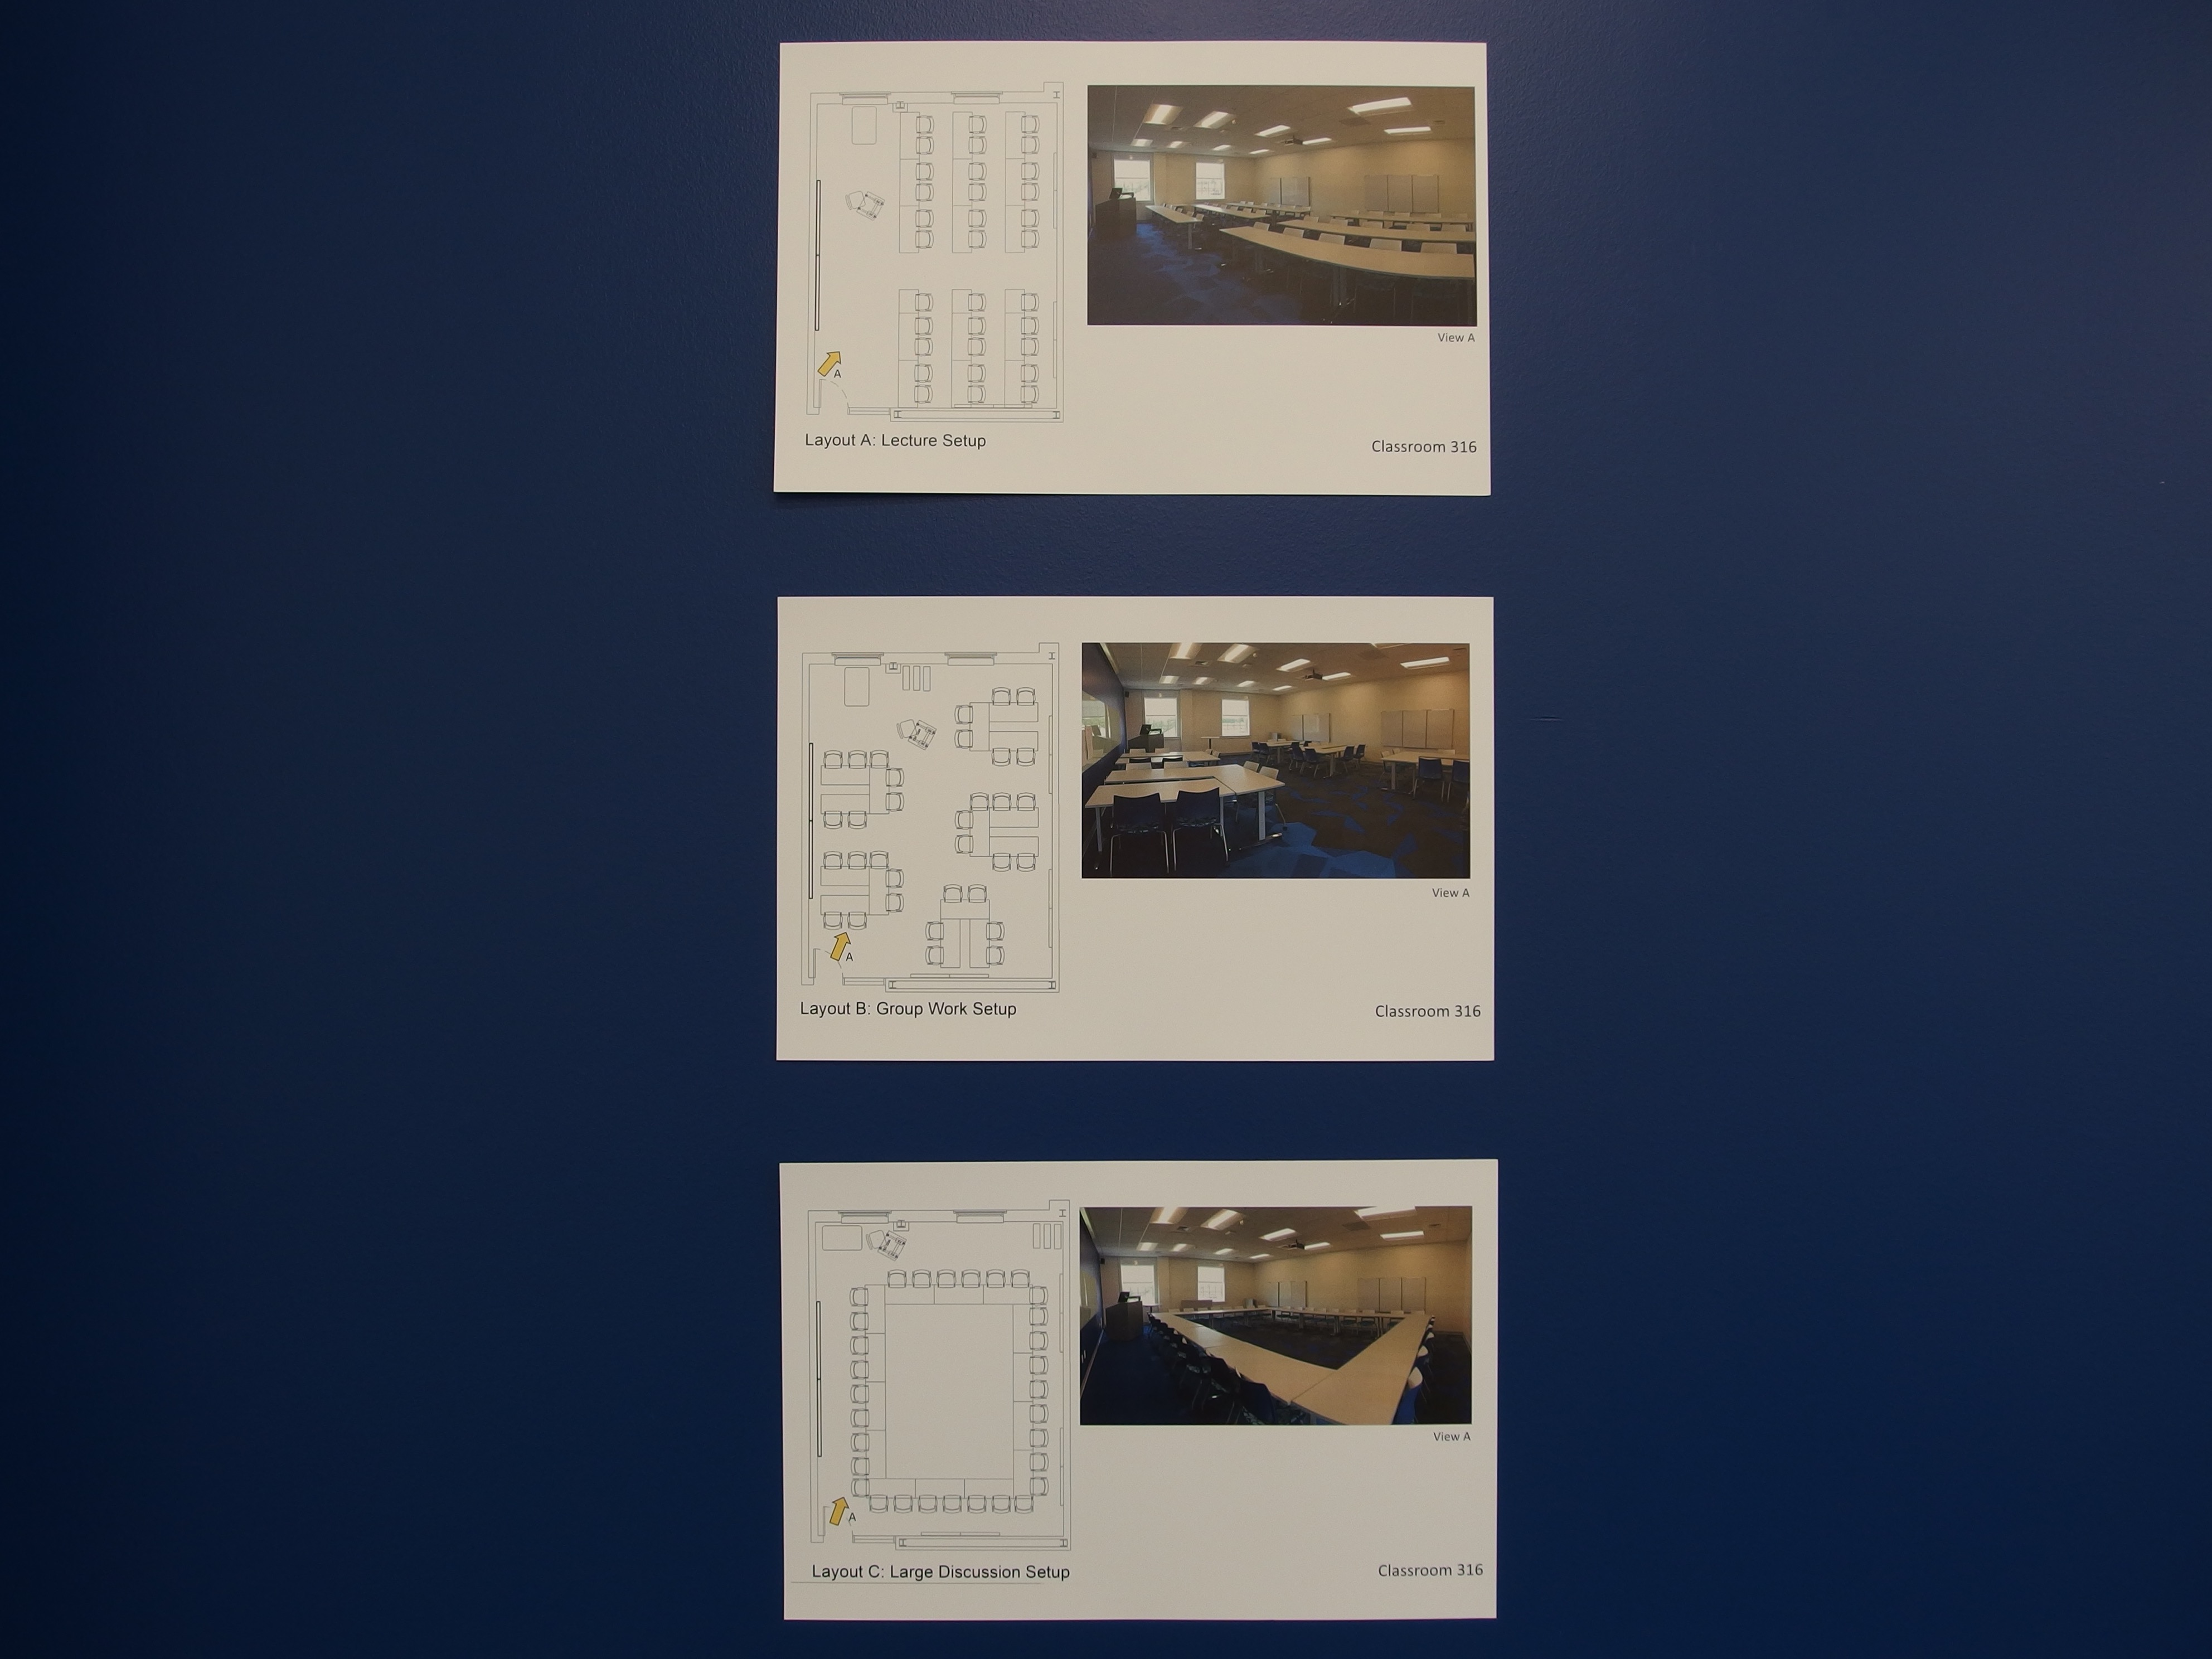 A photo of the available room layout options.